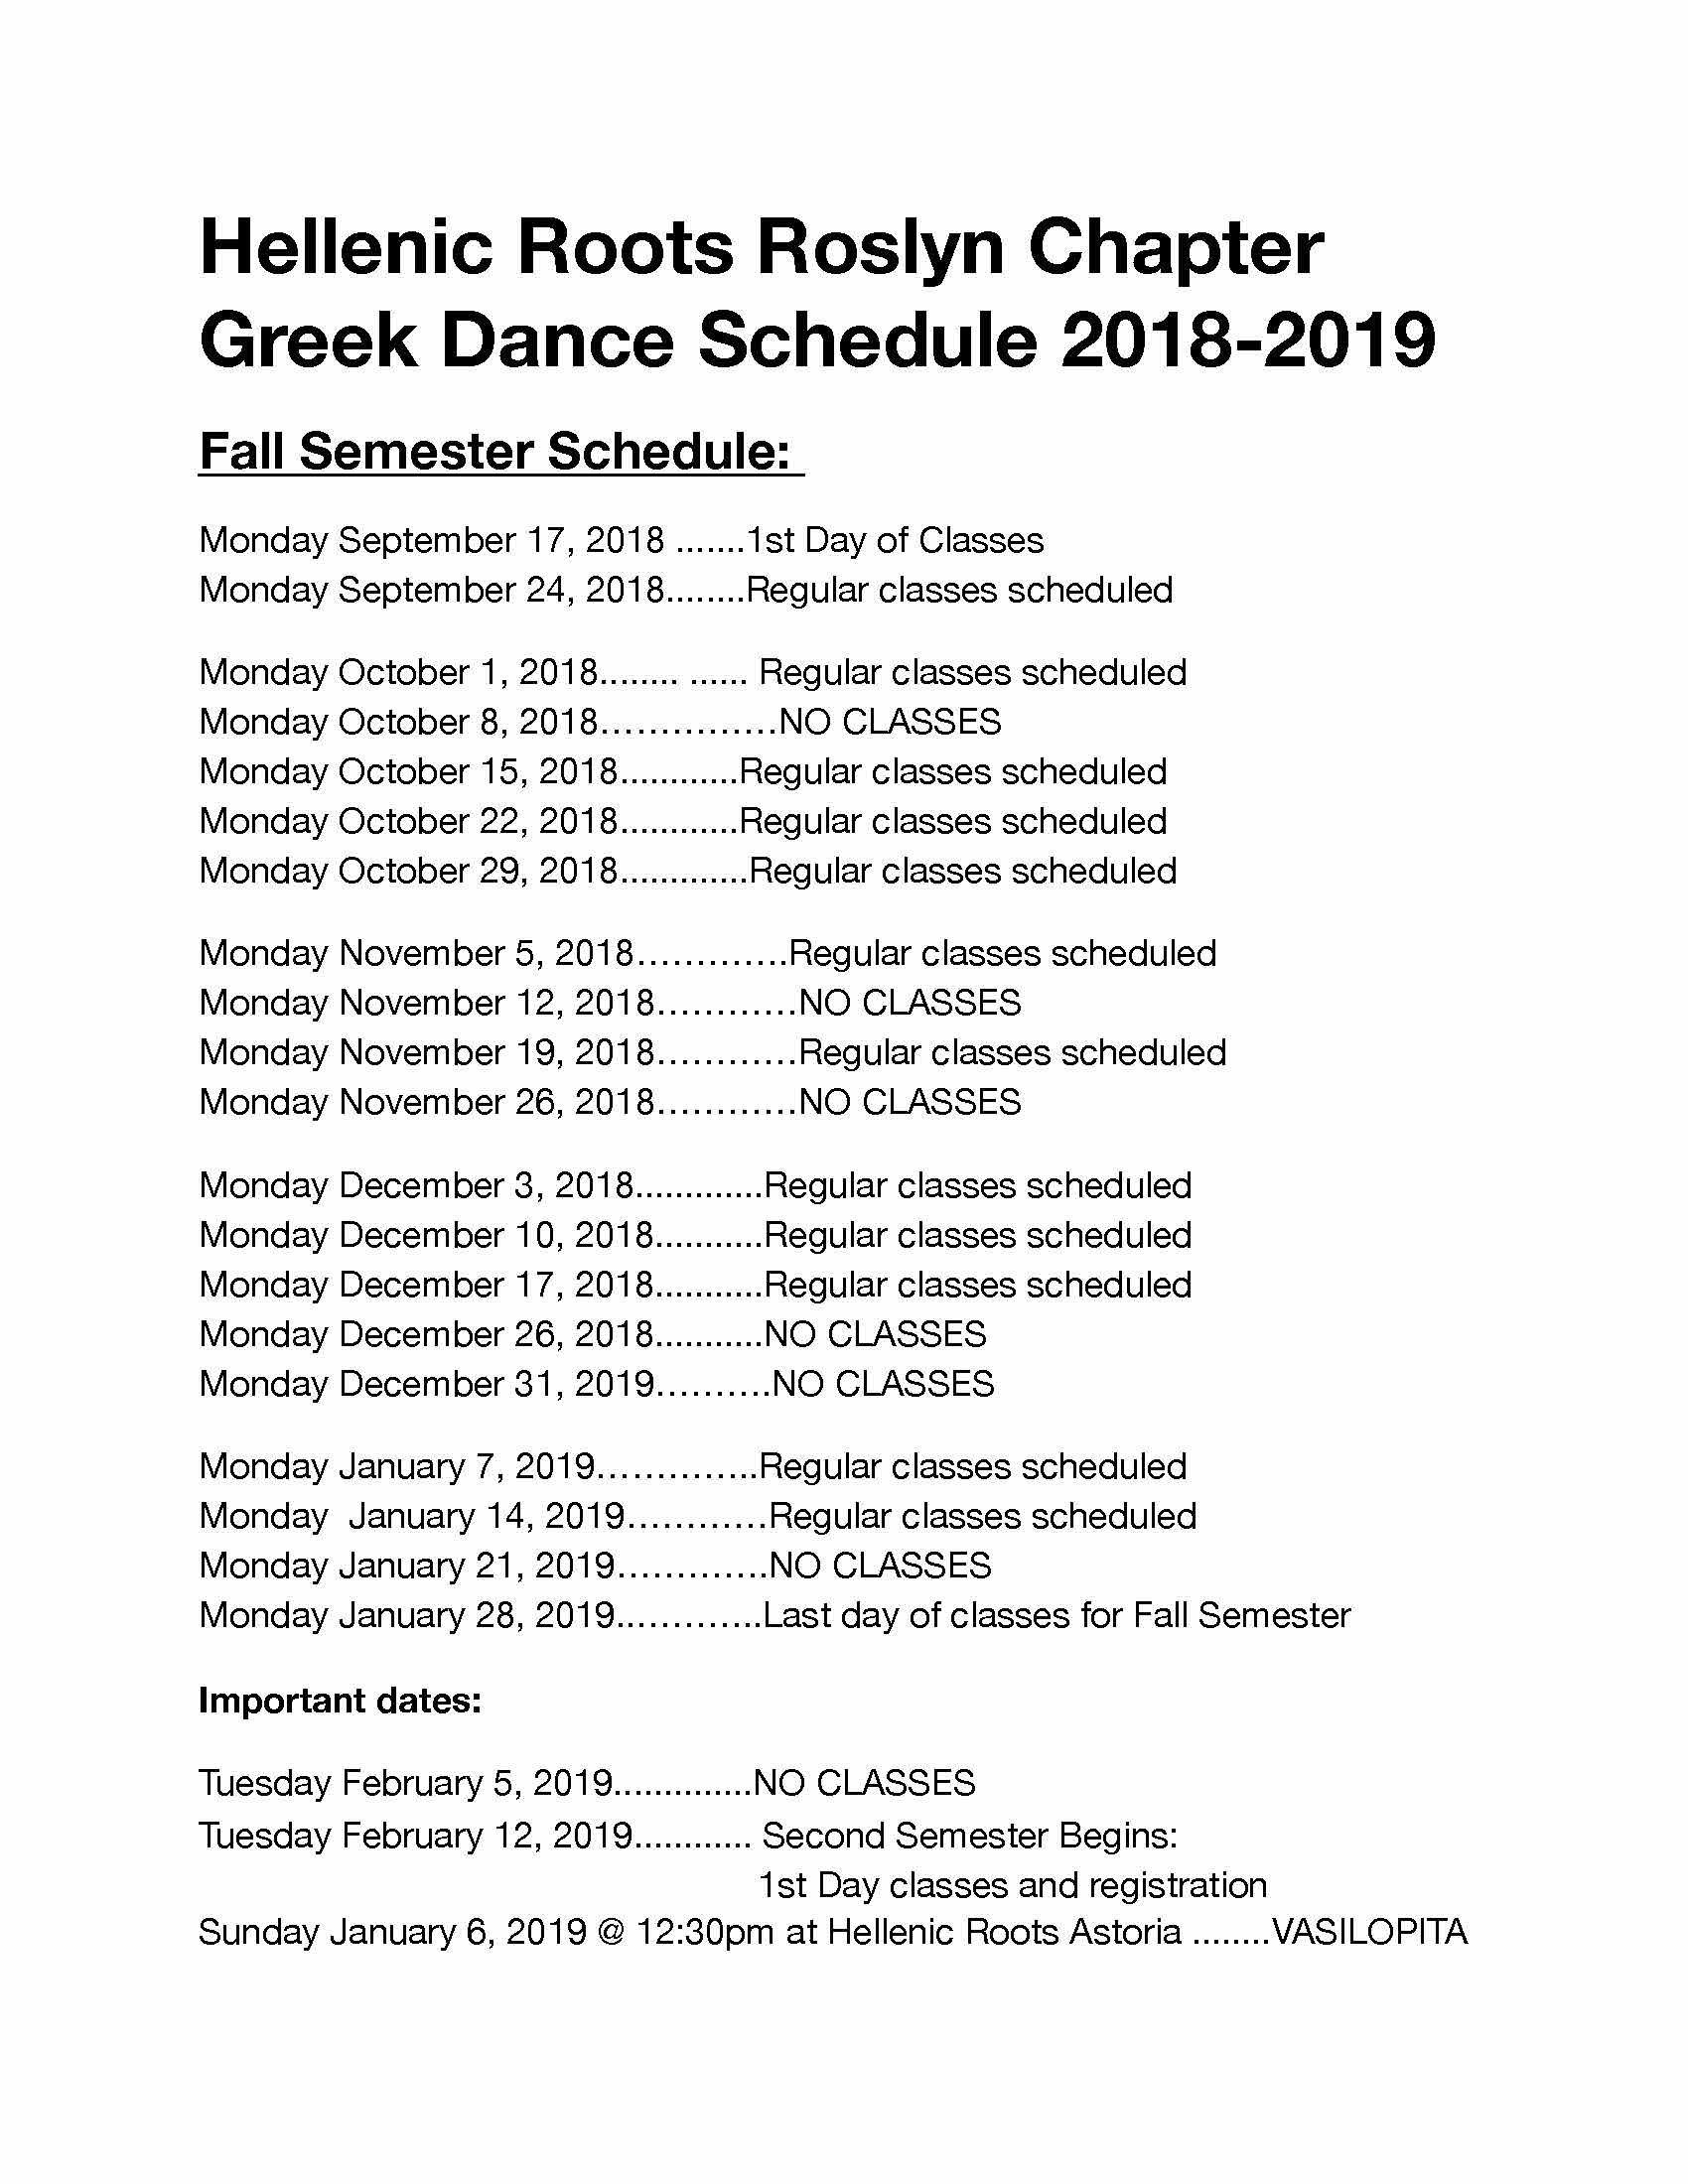 Hellenic Roots Roslyn Class Schedule Fall 2018